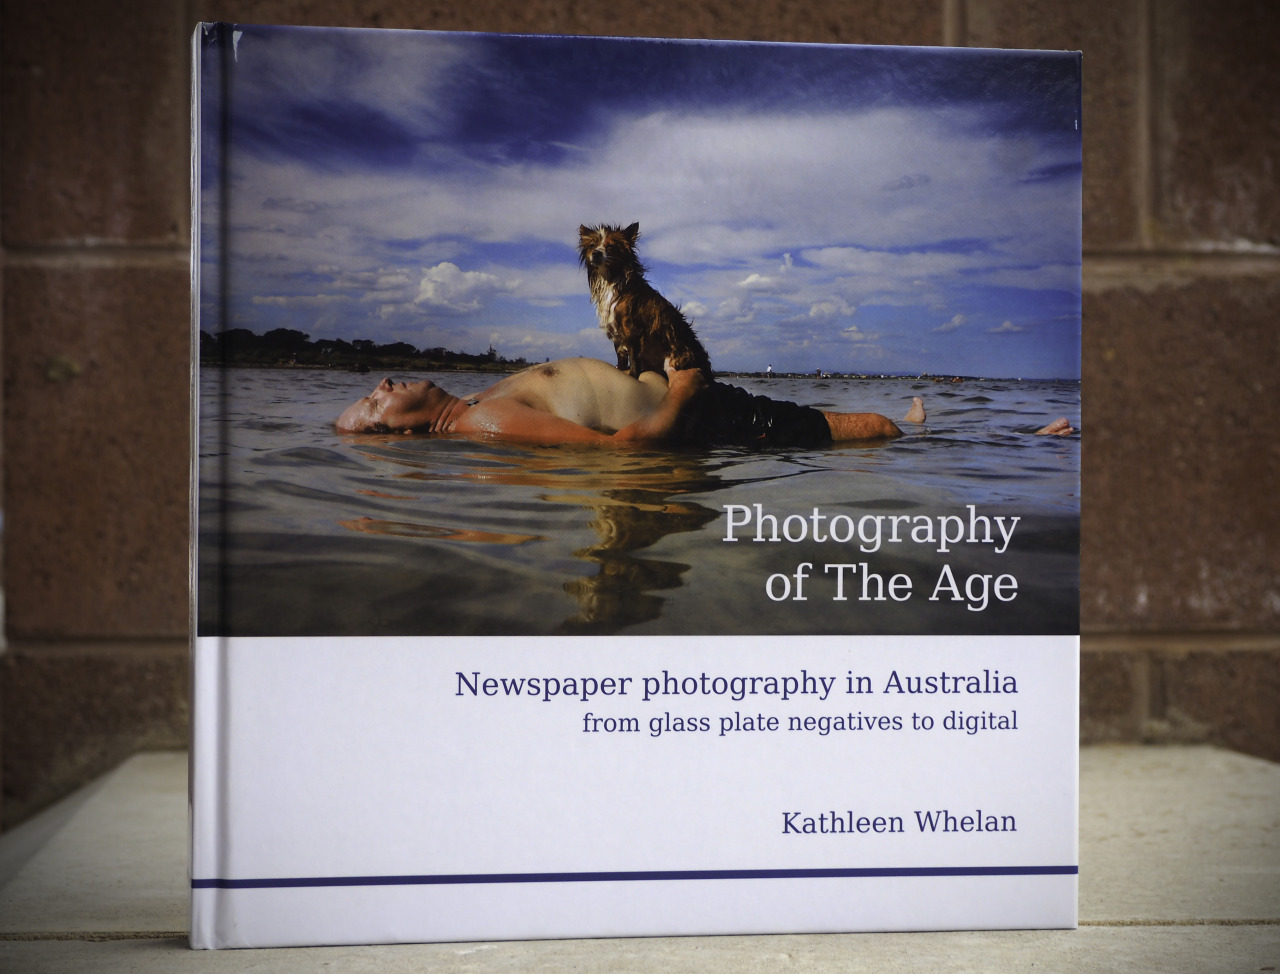 """Photography of the Age: A book review        The hardcover book is about as big, and as heavy, as a typical phonebook.      This isn't a book. It's a manual.   A blow-by-blow, day-to-day account of a day in the life of an  Age  photographer, lumped with some history, some gear talk, and a glossery.    Photography of the Age , by Kathleen Whelan, is the kind of book you need to lift with your knees. You could bludgenon an intruder with it. But what you should do with it is read it over and over until you wear the pages thin.        I was lucky to be given a signed copy, by a friend for Christmas. Thanks, @markjesser!     Photographers — you've got to get this book. Simple as that.   It encapsulates everything about working in a news photographer at  The Age  in Melbourne in chapters such as:   - The context of an image  - Legal and ethical constraints  - Use of new technologies  - The layout of the paper  - The press photographer's job   Then it profiles a whole bunch of past and present  Age  photographers, showing their work, unearthing their processes, camera settings, approach to jobs, gear, and so on.   The photography is fantastic. The content is comprehensive.   But it's very much a photographers' book. I showed mine to several non-newspaper-reading people that didn't really appreciate photography. They just shrugged and said """"it's okay"""". So, I doubt the book will inspire people to pick up photography.   But — If you are a photographer, I guarantee it will inspire you to make better pictures.   This really is a look inside an organisation that affords its photographers two of the rarest things in the industry: Some time and resources. The pixels contained in this page a compelling proof that time + resources + highly-trained, creative photographers = iconic, amazing results.   But — and this is possibly my biggest gripe with the book — it's written in a pretty melancholy tone.   The blurb on the back opens with: """"Are newspapers dead?"""" and finishes with """"Kathle"""